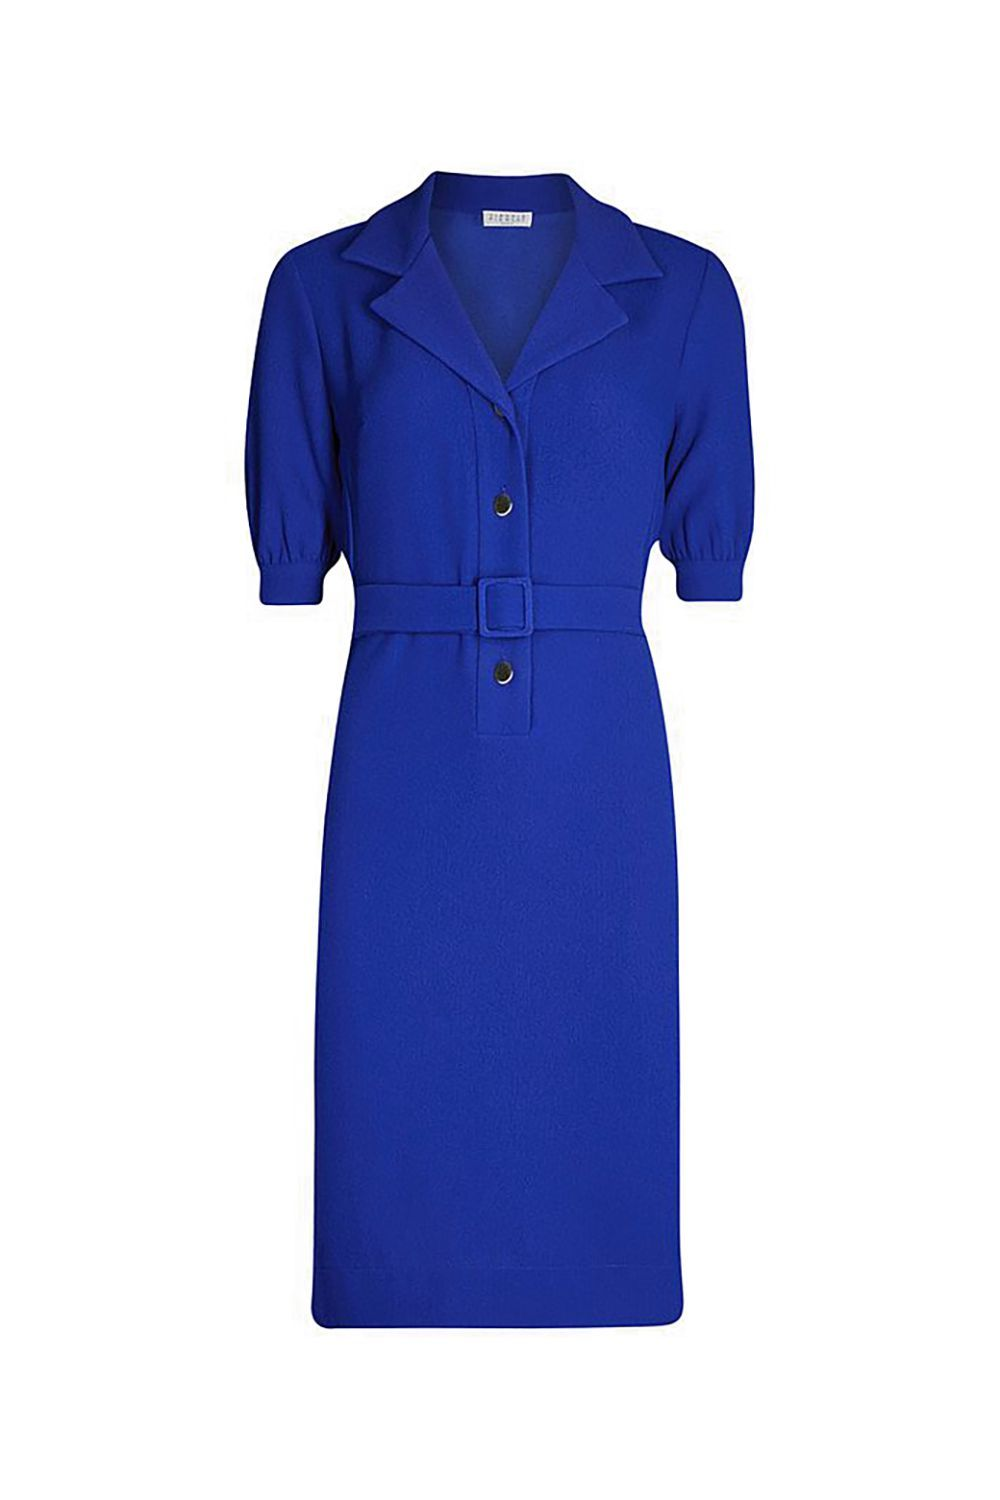 Best for a Colleague's Wedding Cobalt Belted Shirt Dress CLAUDIE PIERLOT selfridges.com $280.00 SHOP IT Channel Kate Middleton in this cobalt blue coat dress that falls just above the knee. The dress is polished and sophisticated thanks to the collar and belt around the waist.